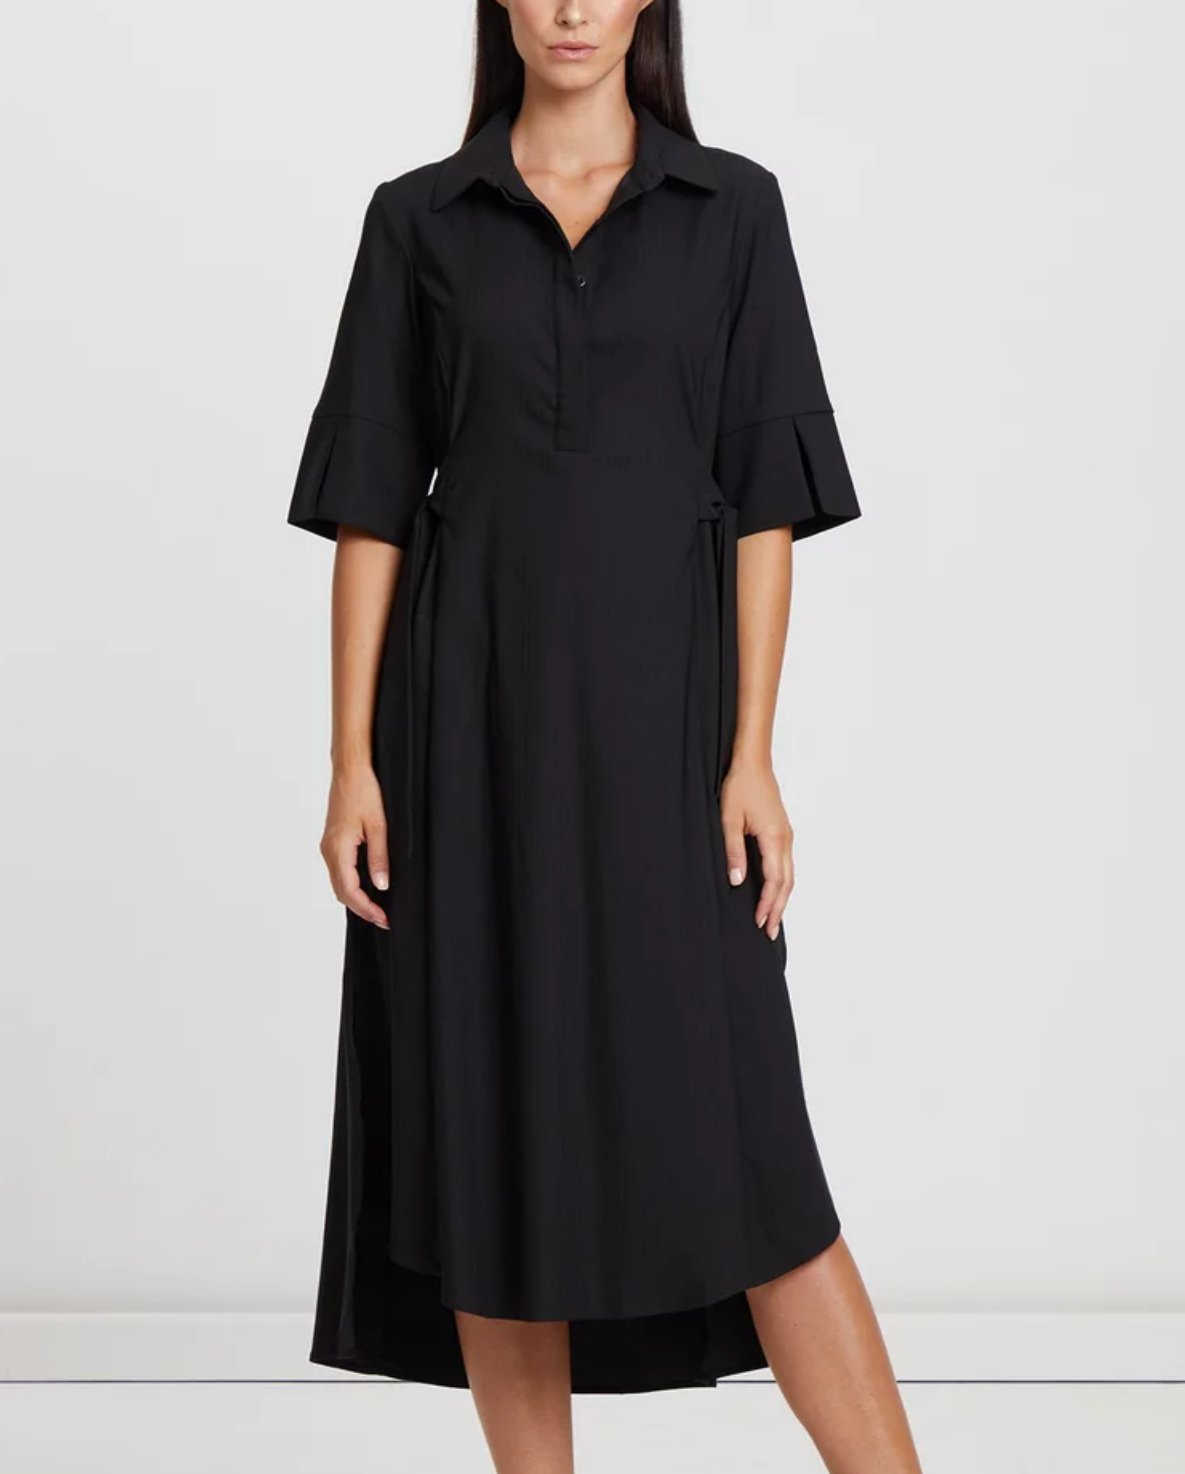 Willa - Black button-up Bowery collared shirt dress